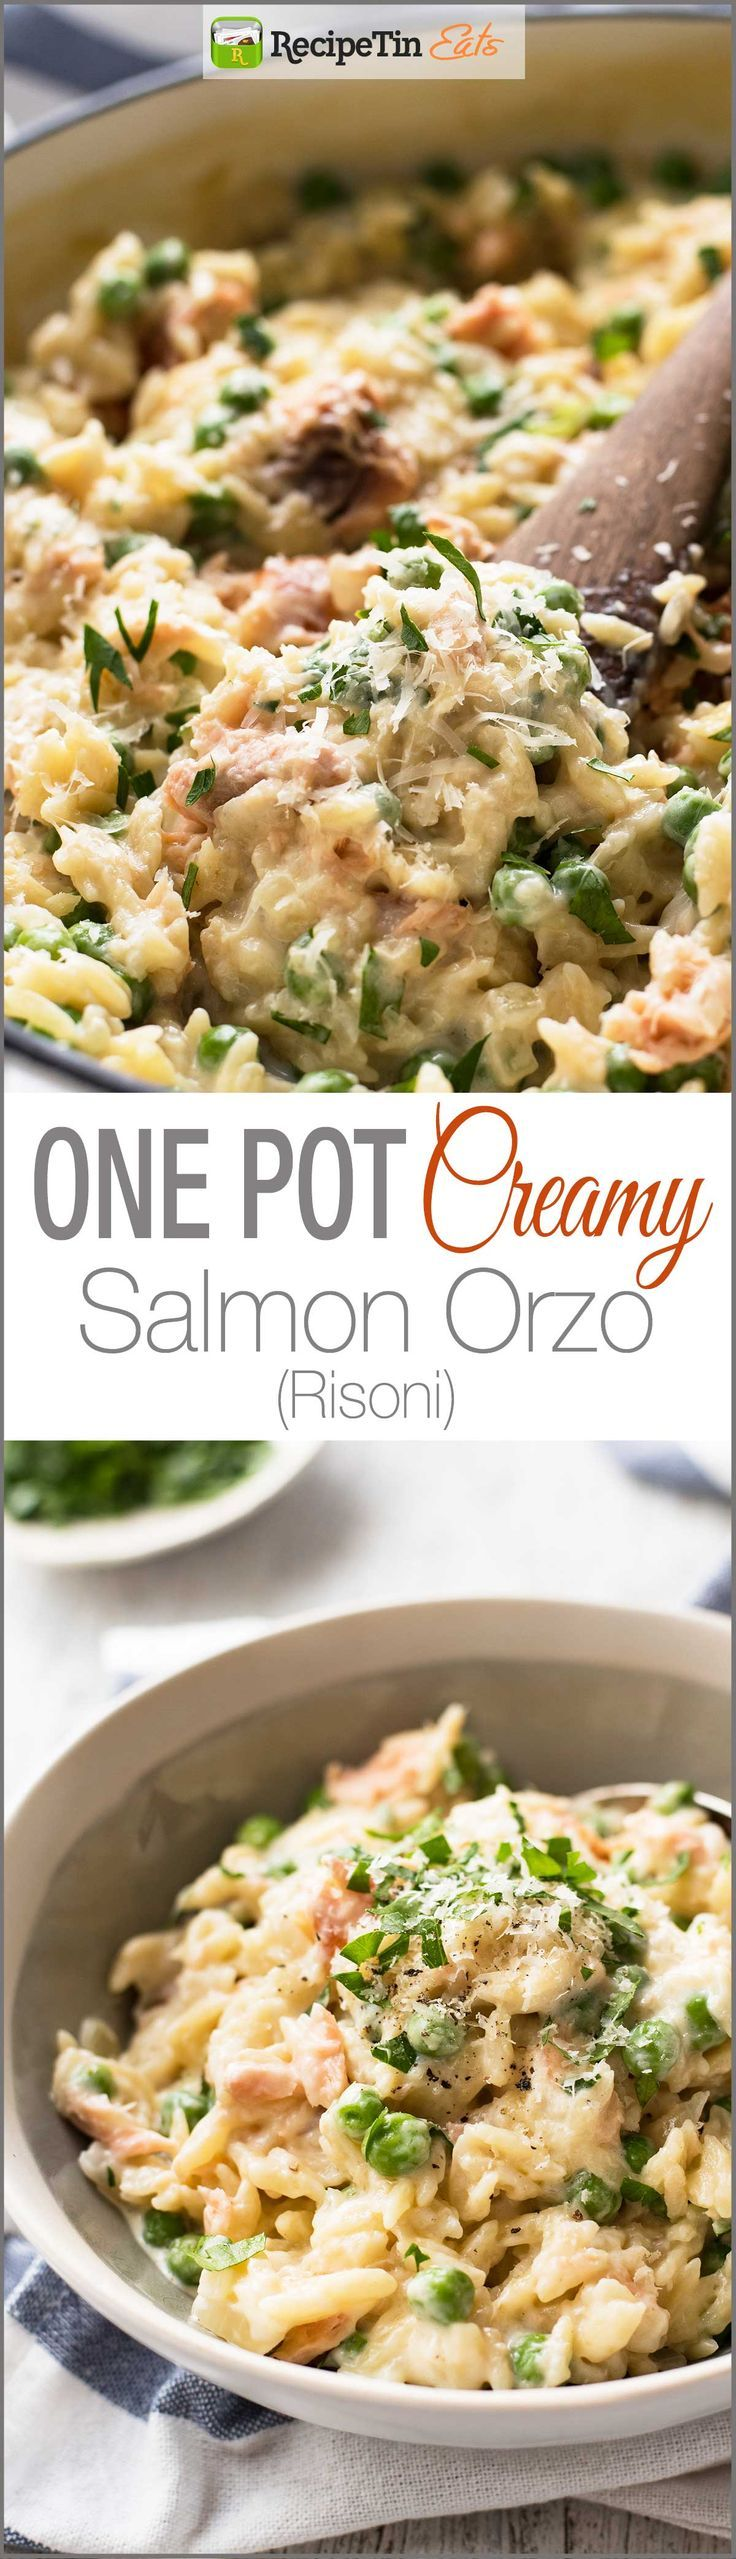 Creamy Salmon Risoni / Orzo - Made from scratch, and on the table in just 15 minutes!